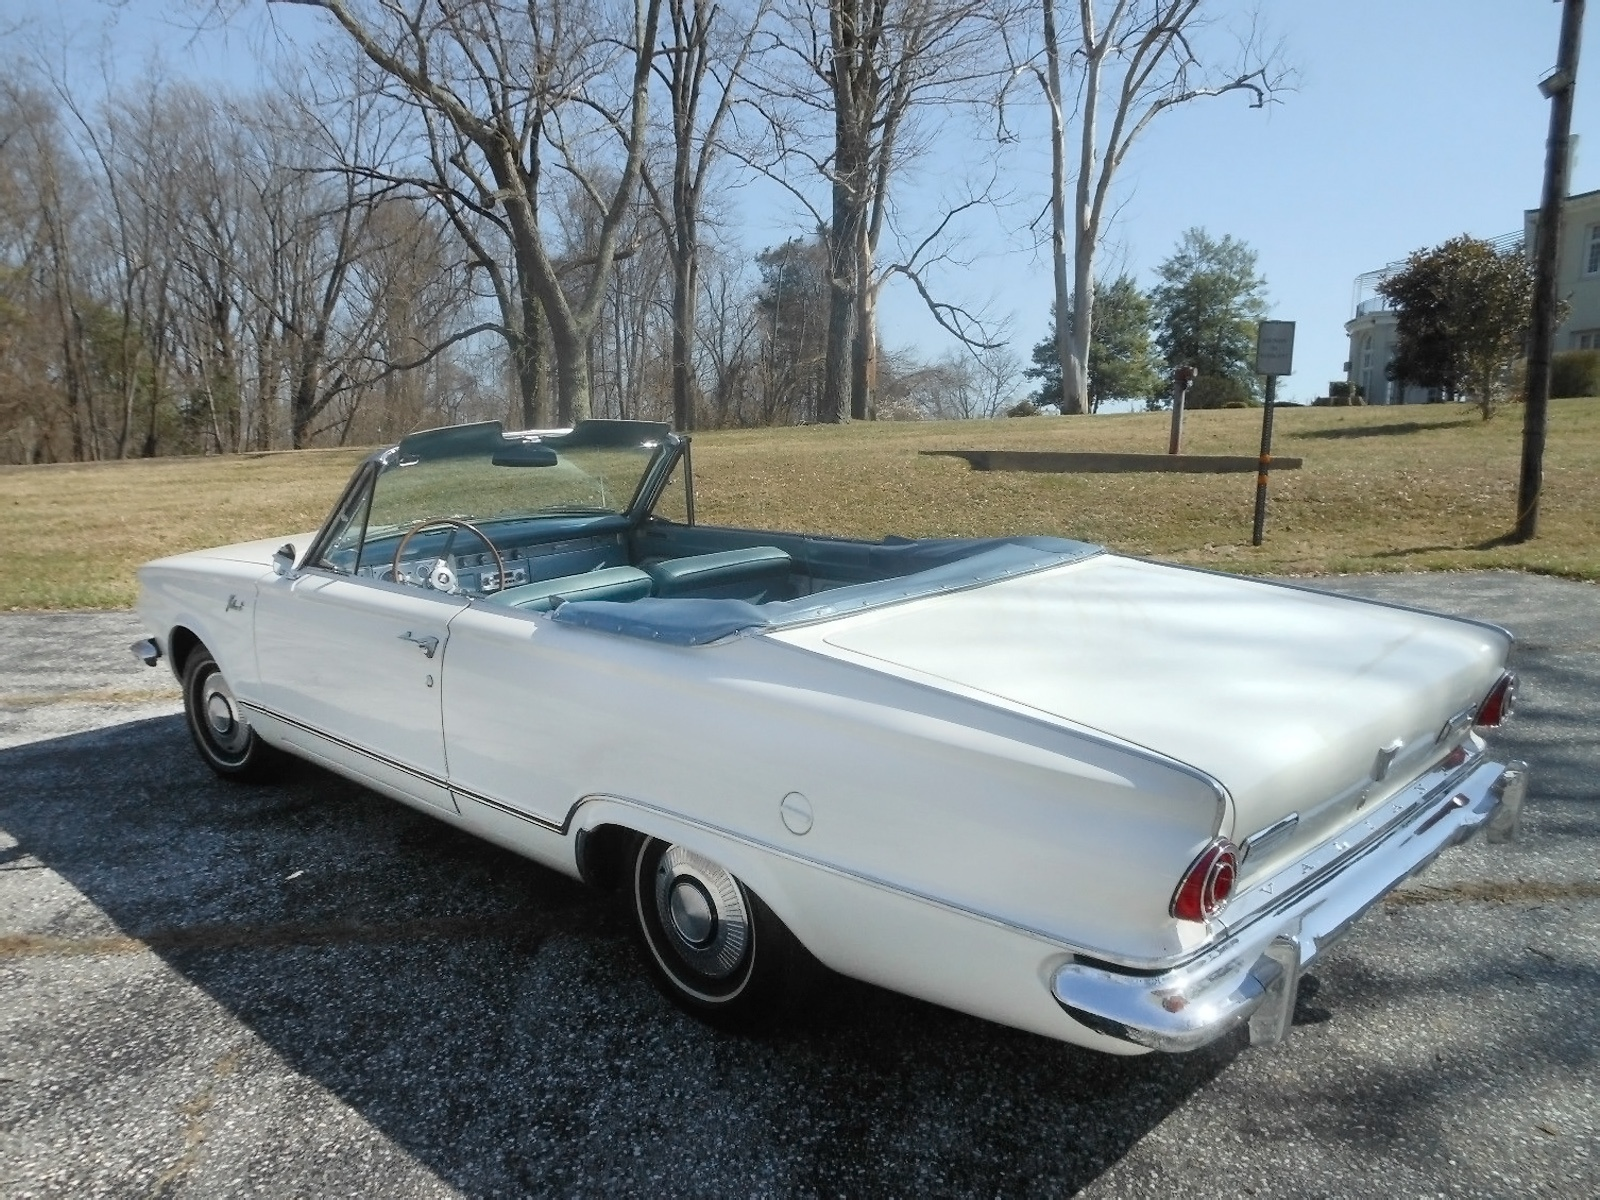 1 Of 1: 1964 Plymouth Valiant Convertible